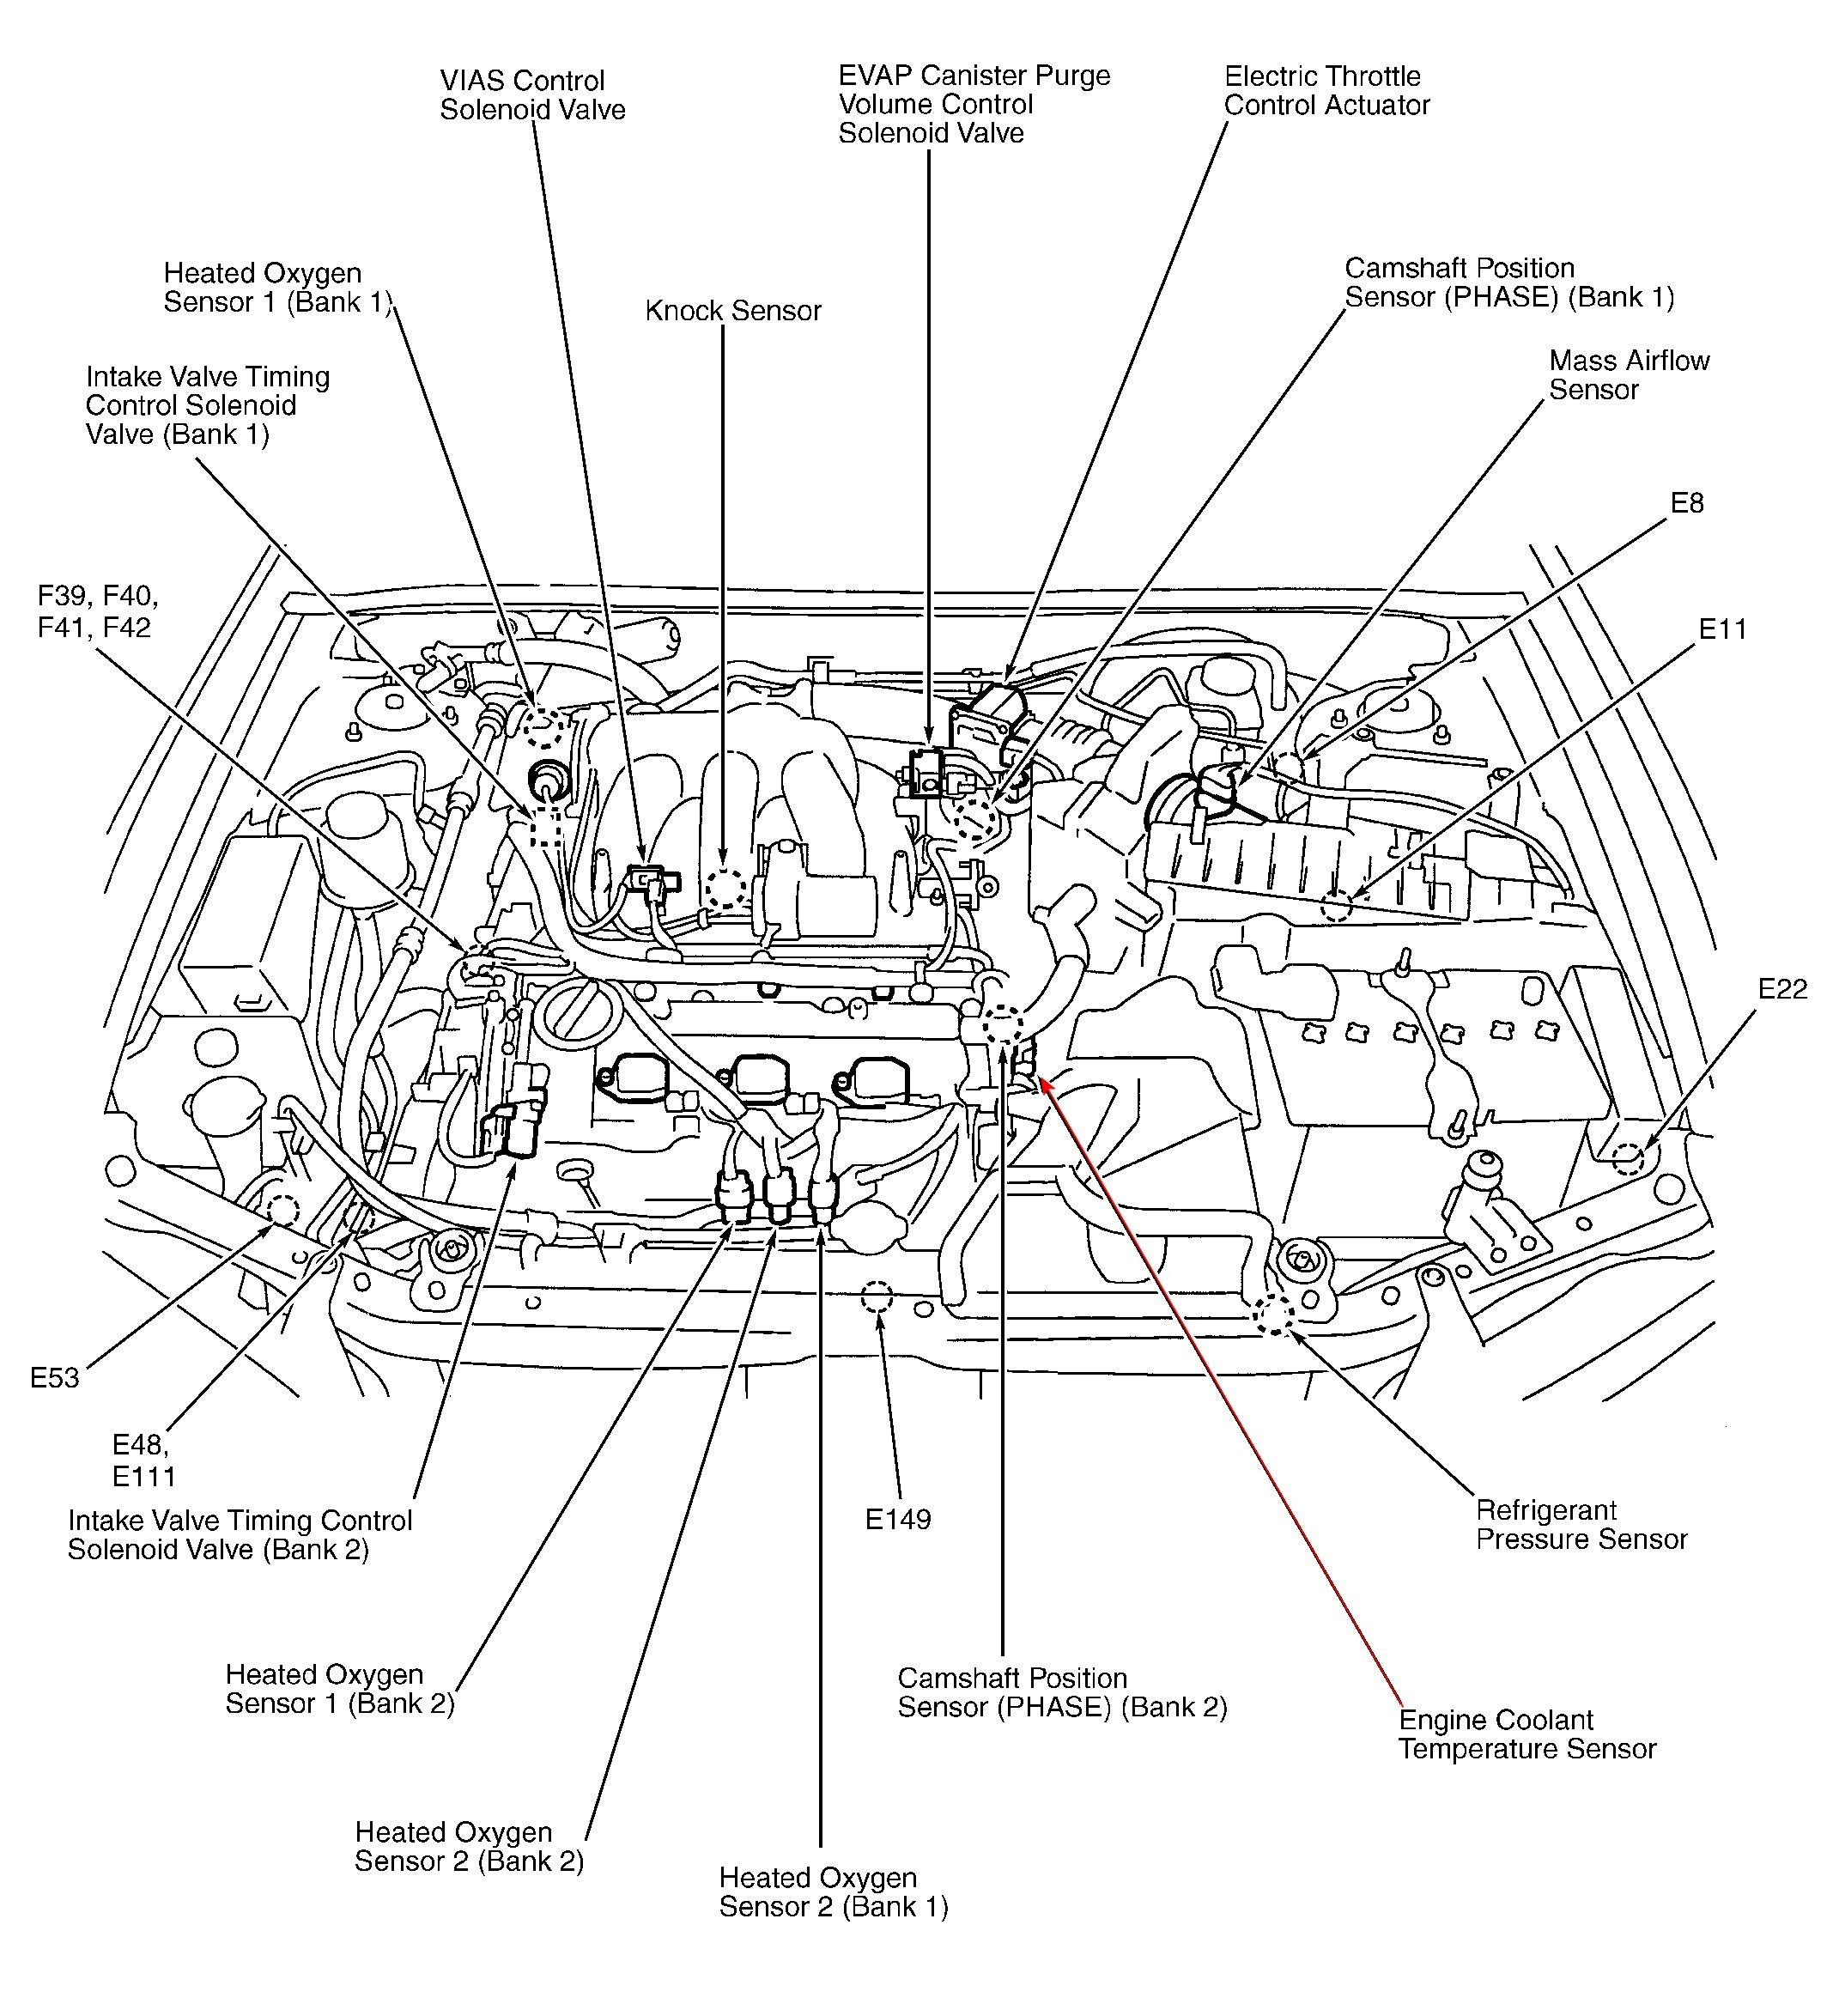 35 Chevy Cavalier Exhaust System Diagram